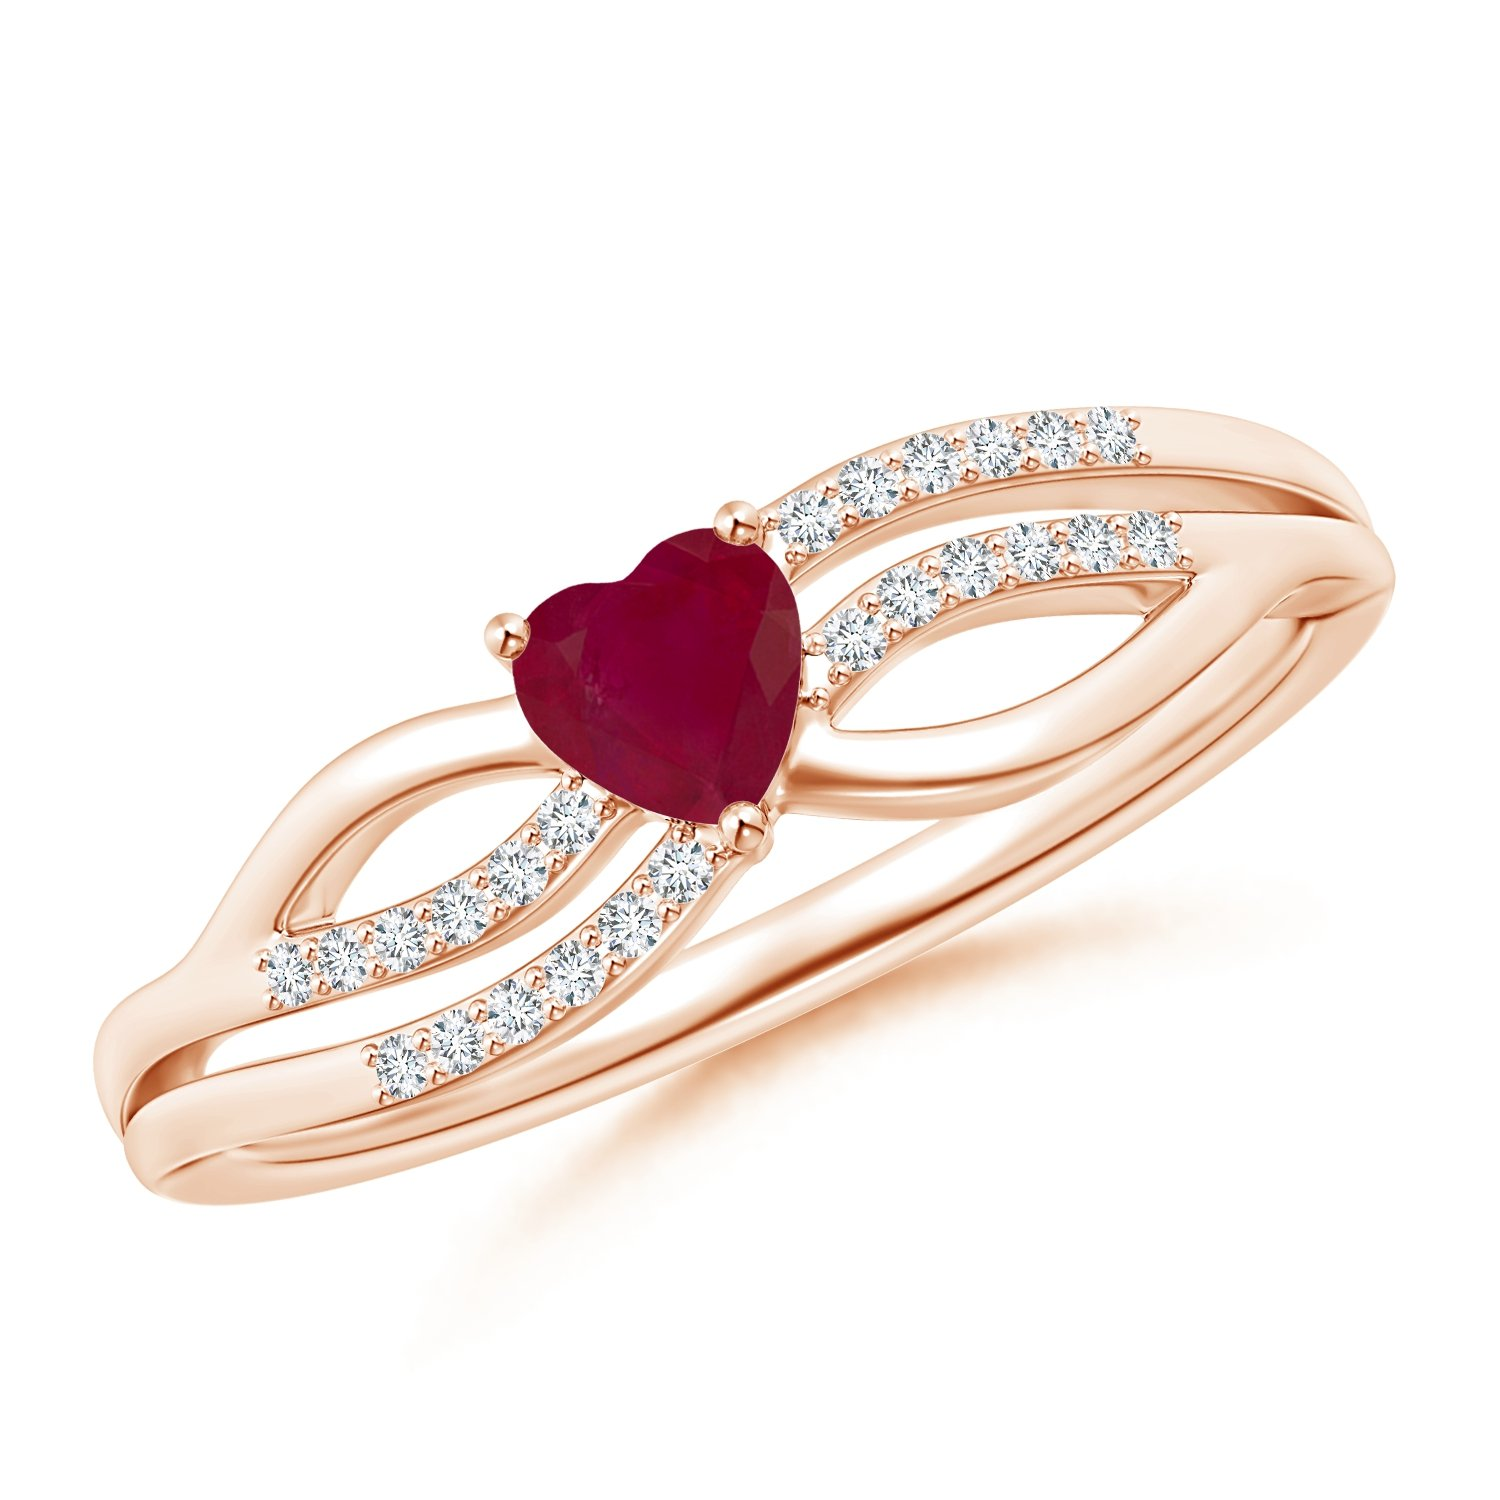 Solitaire Ruby Heart Promise Ring with Diamond Accents in 14K Rose Gold (4mm Ruby)